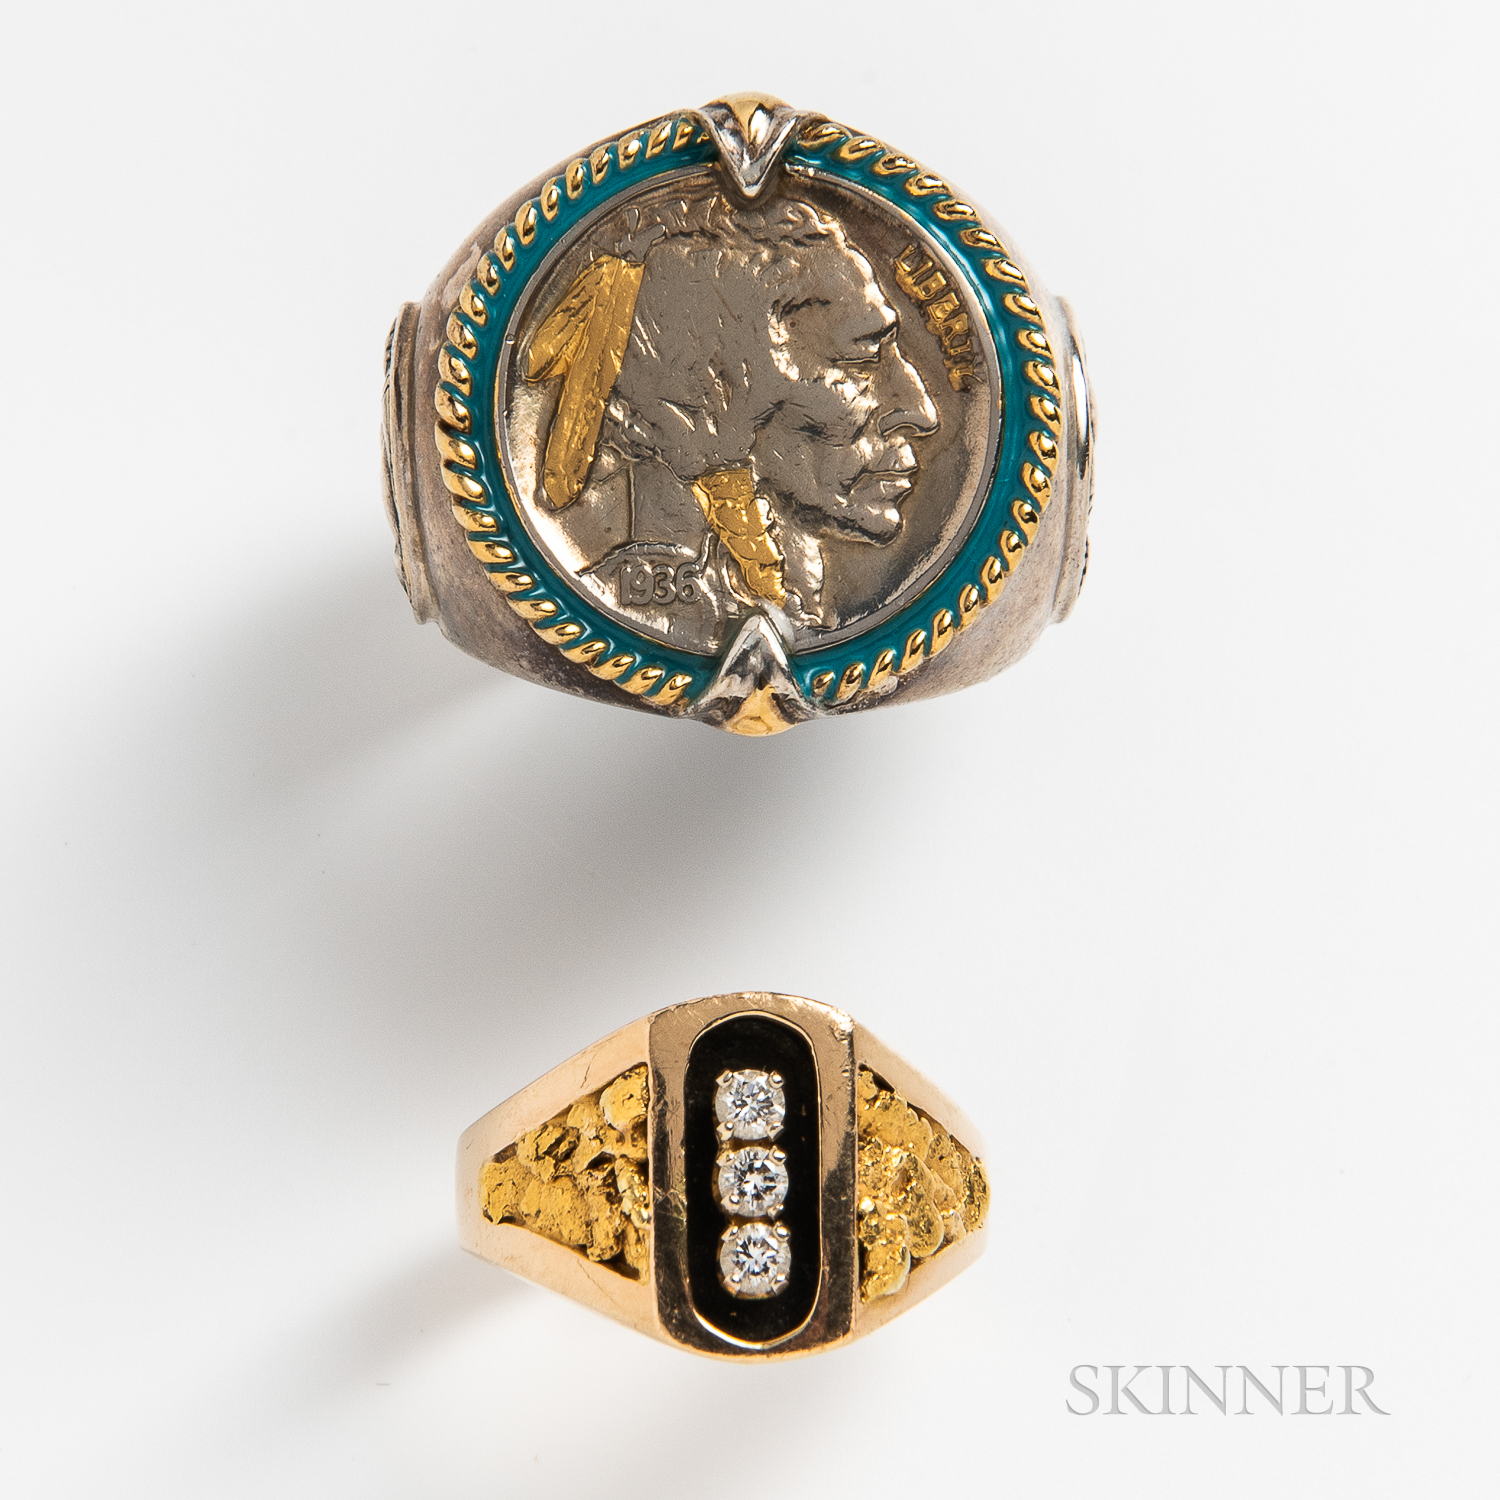 14kt Gold and Diamond Ring and a Sterling Silver and Enamel Buffalo Head Nickel Ring